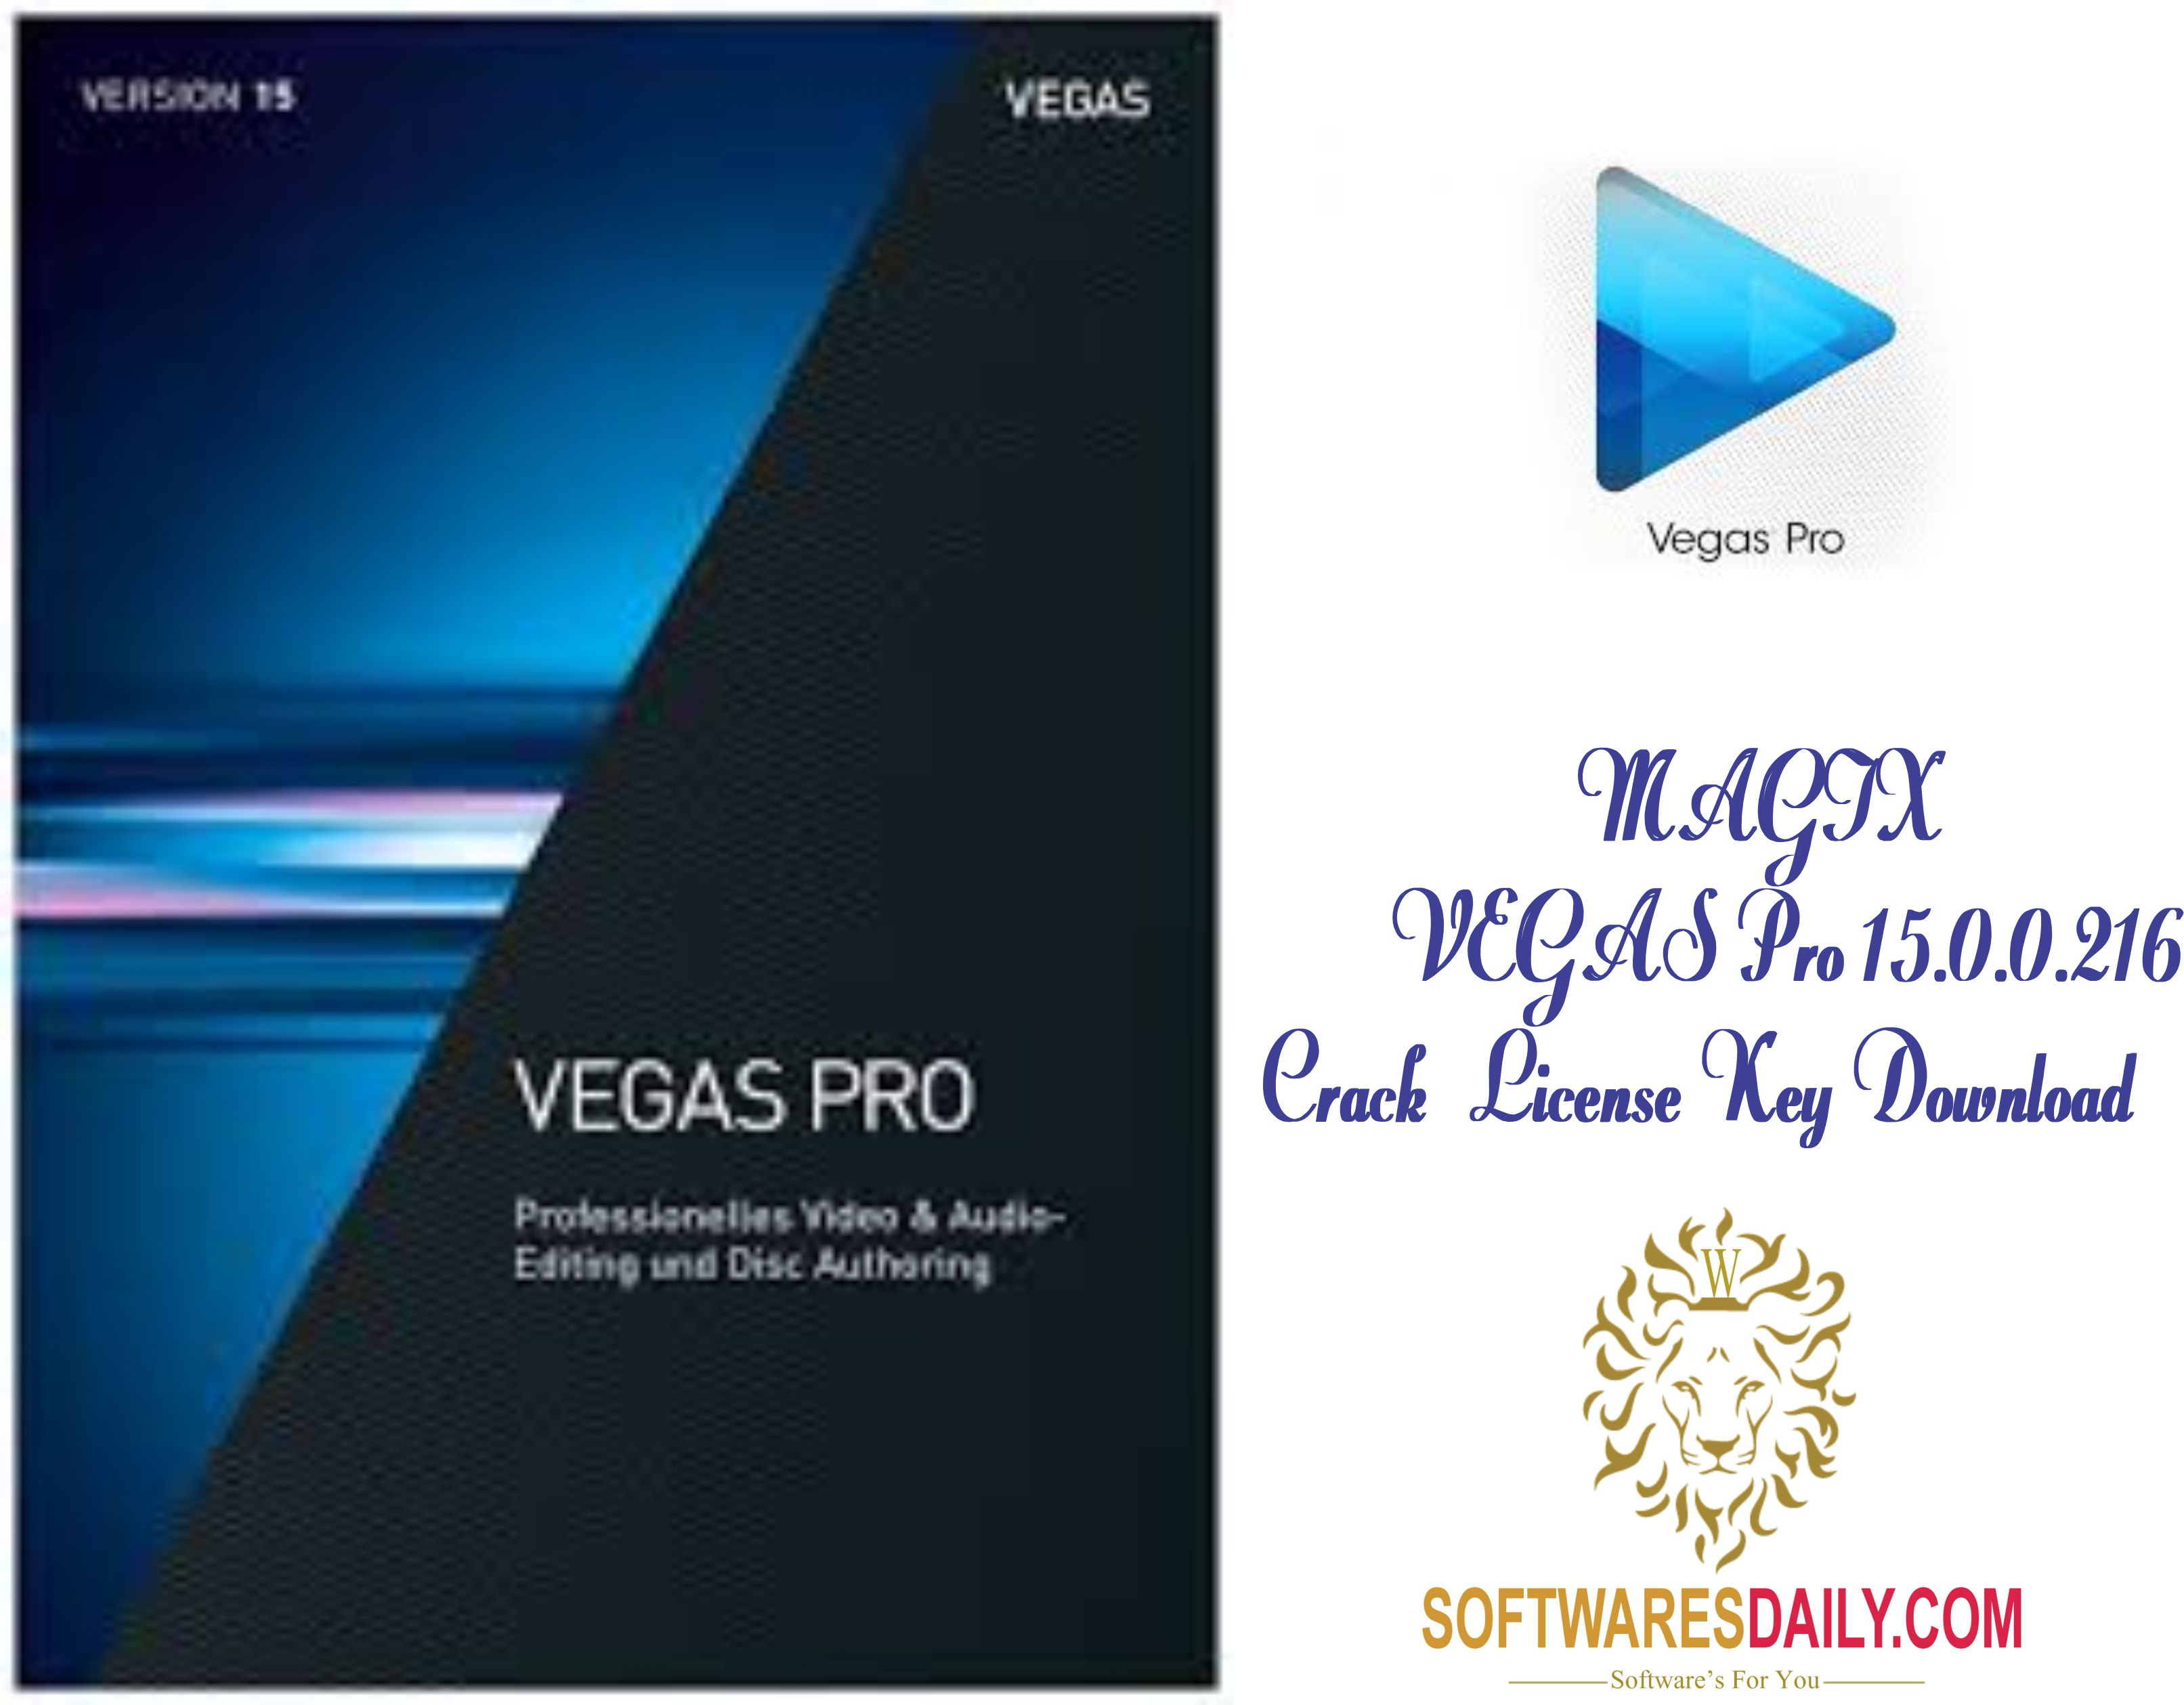 sony vegas pro 15 crack download 64 bit